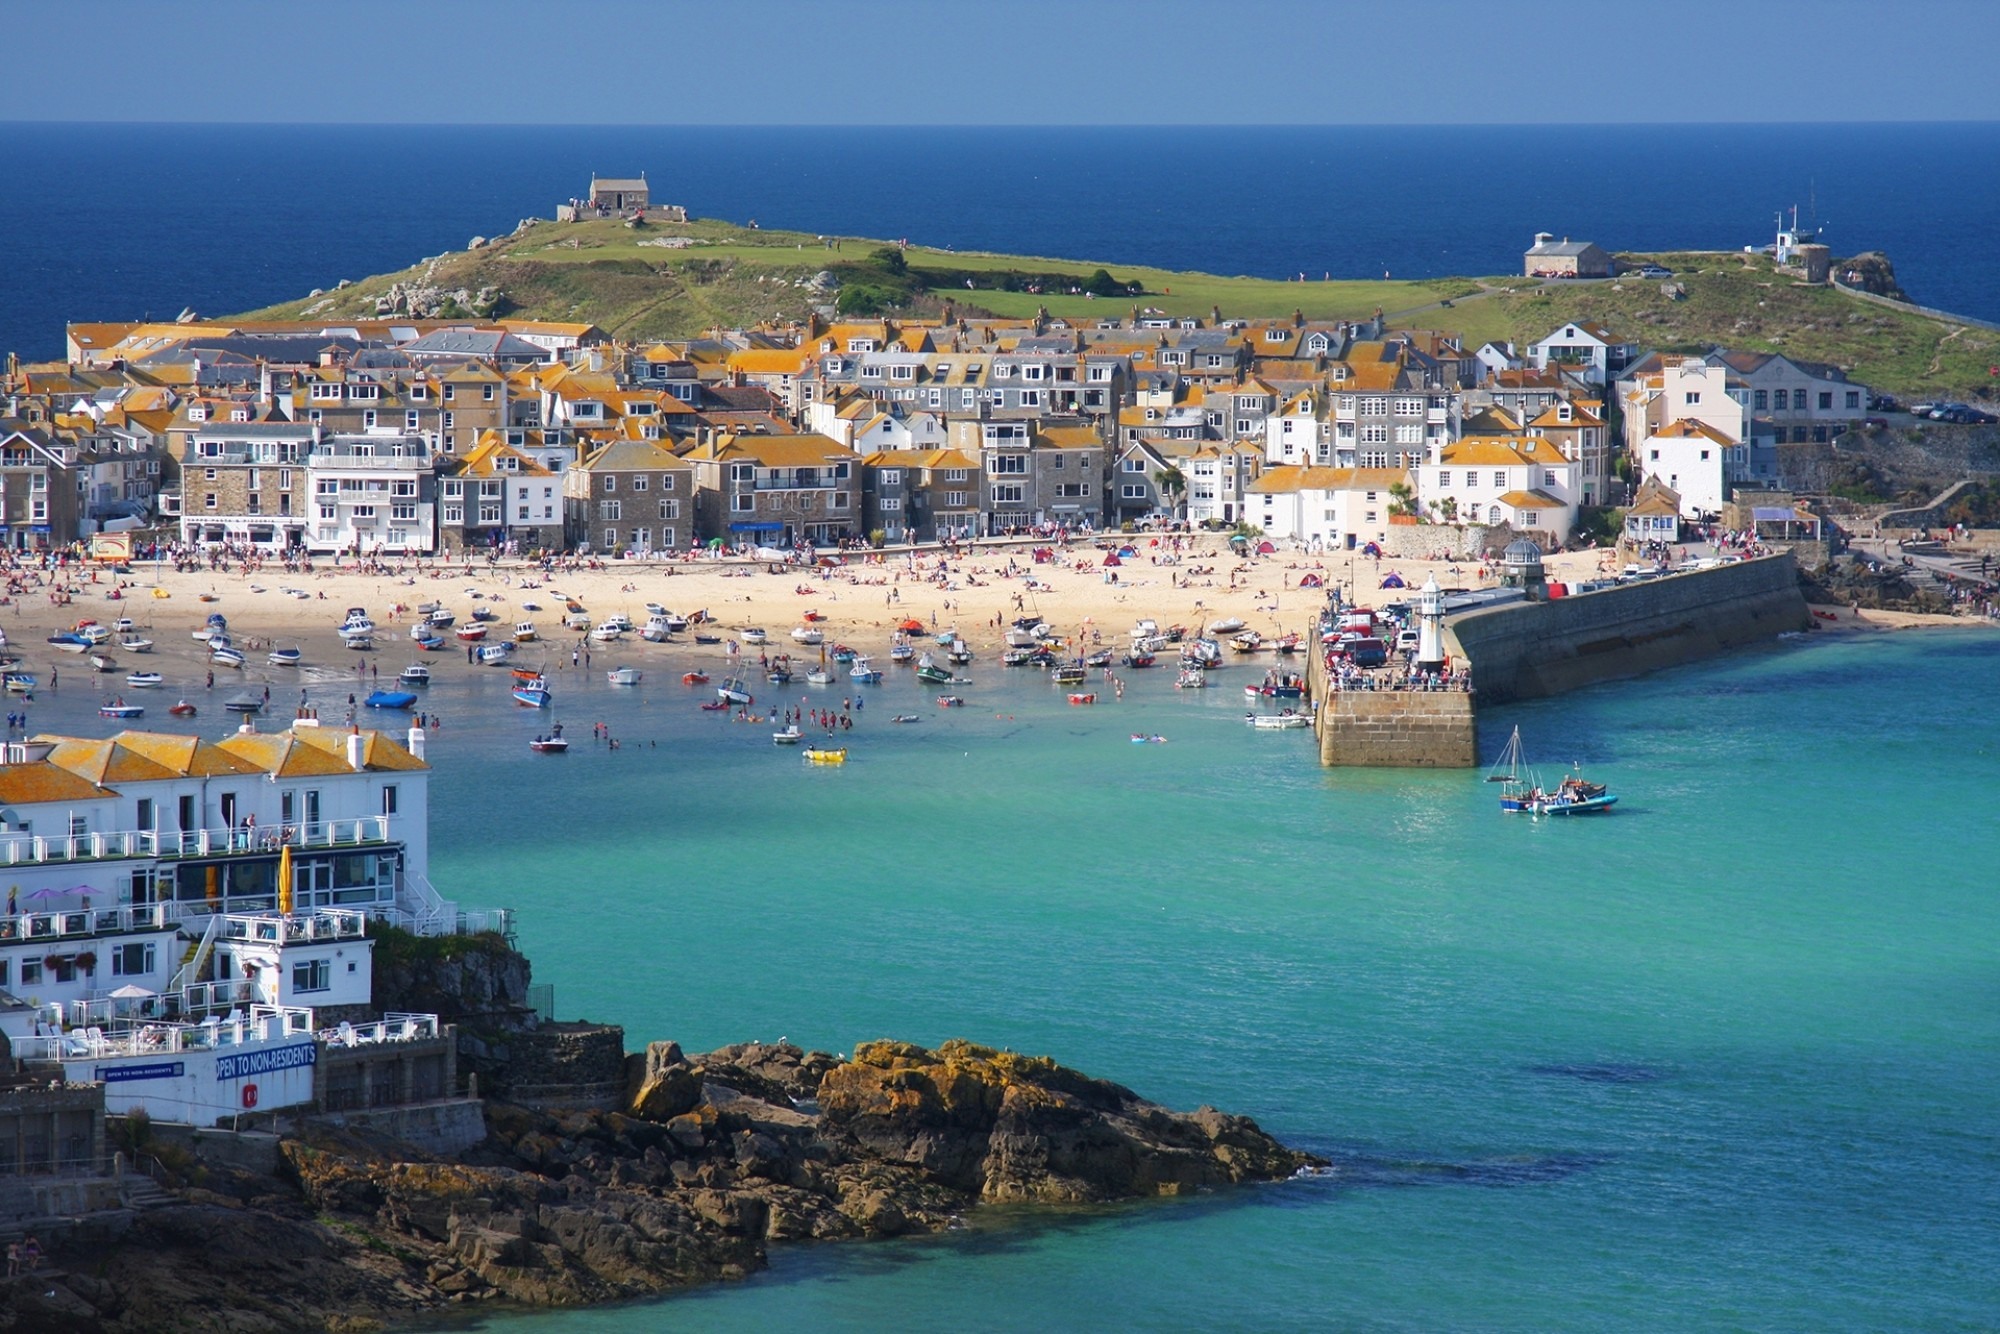 The-seaside-village-of-St.-Ives-in-Cornwall